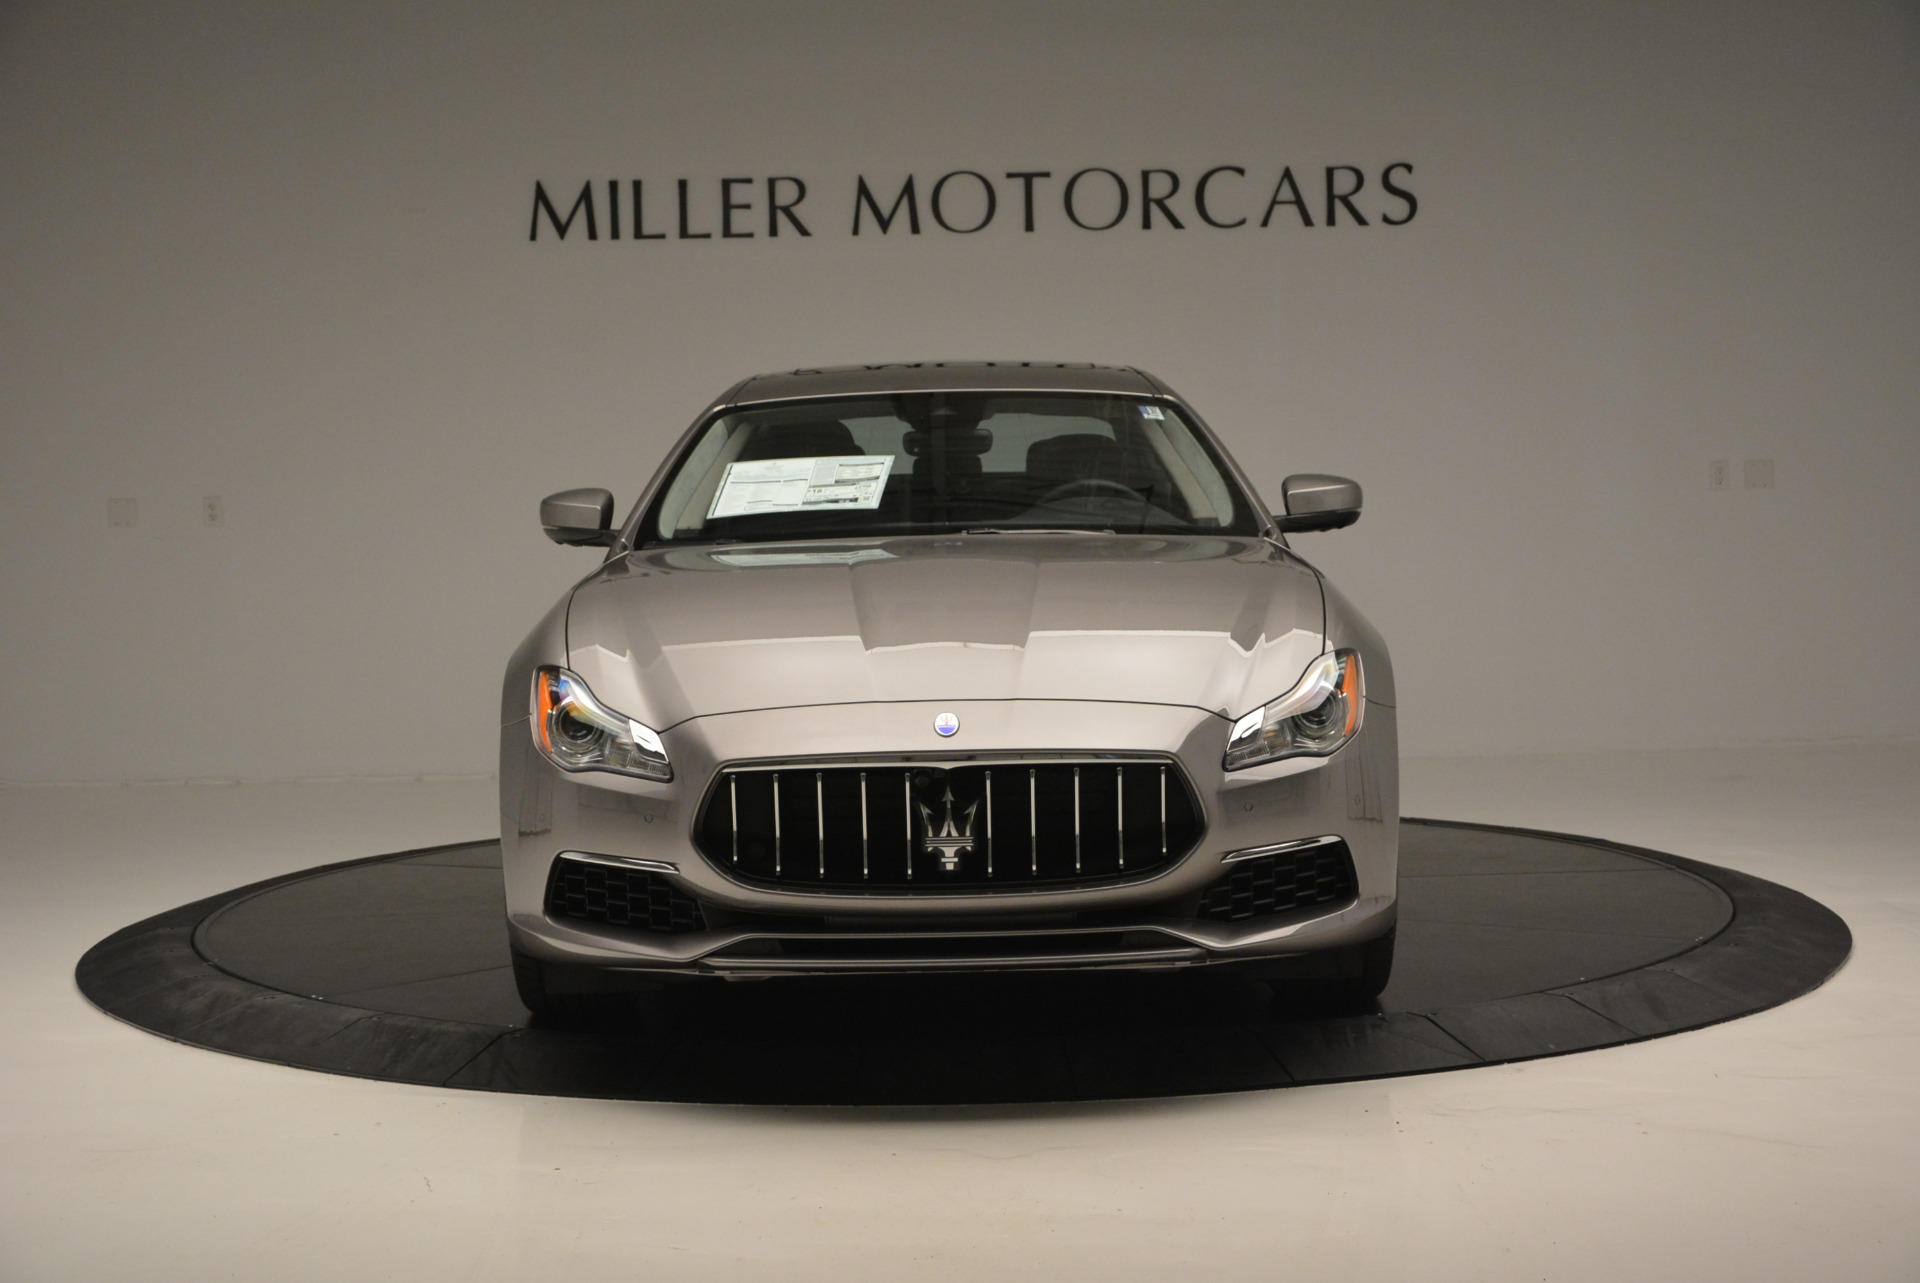 New 2017 Maserati Quattroporte S Q4 GranLusso For Sale In Westport, CT 611_p12